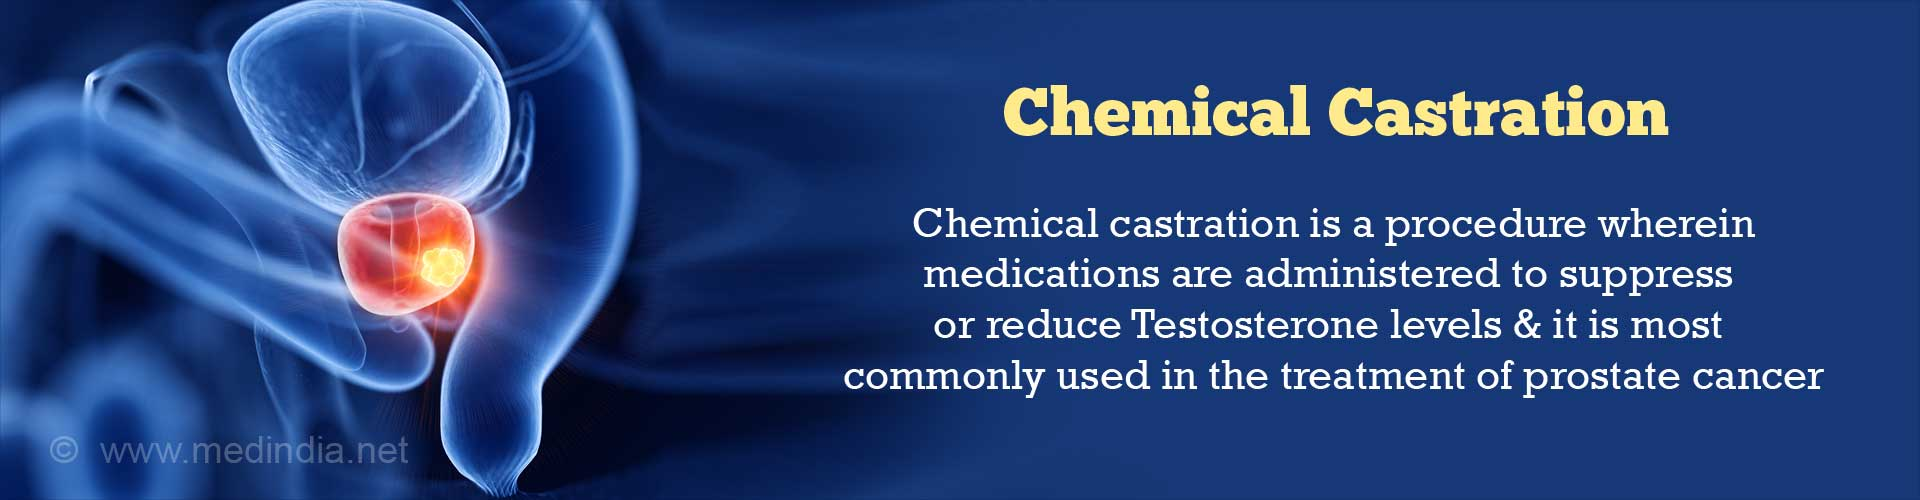 Chemical Castration